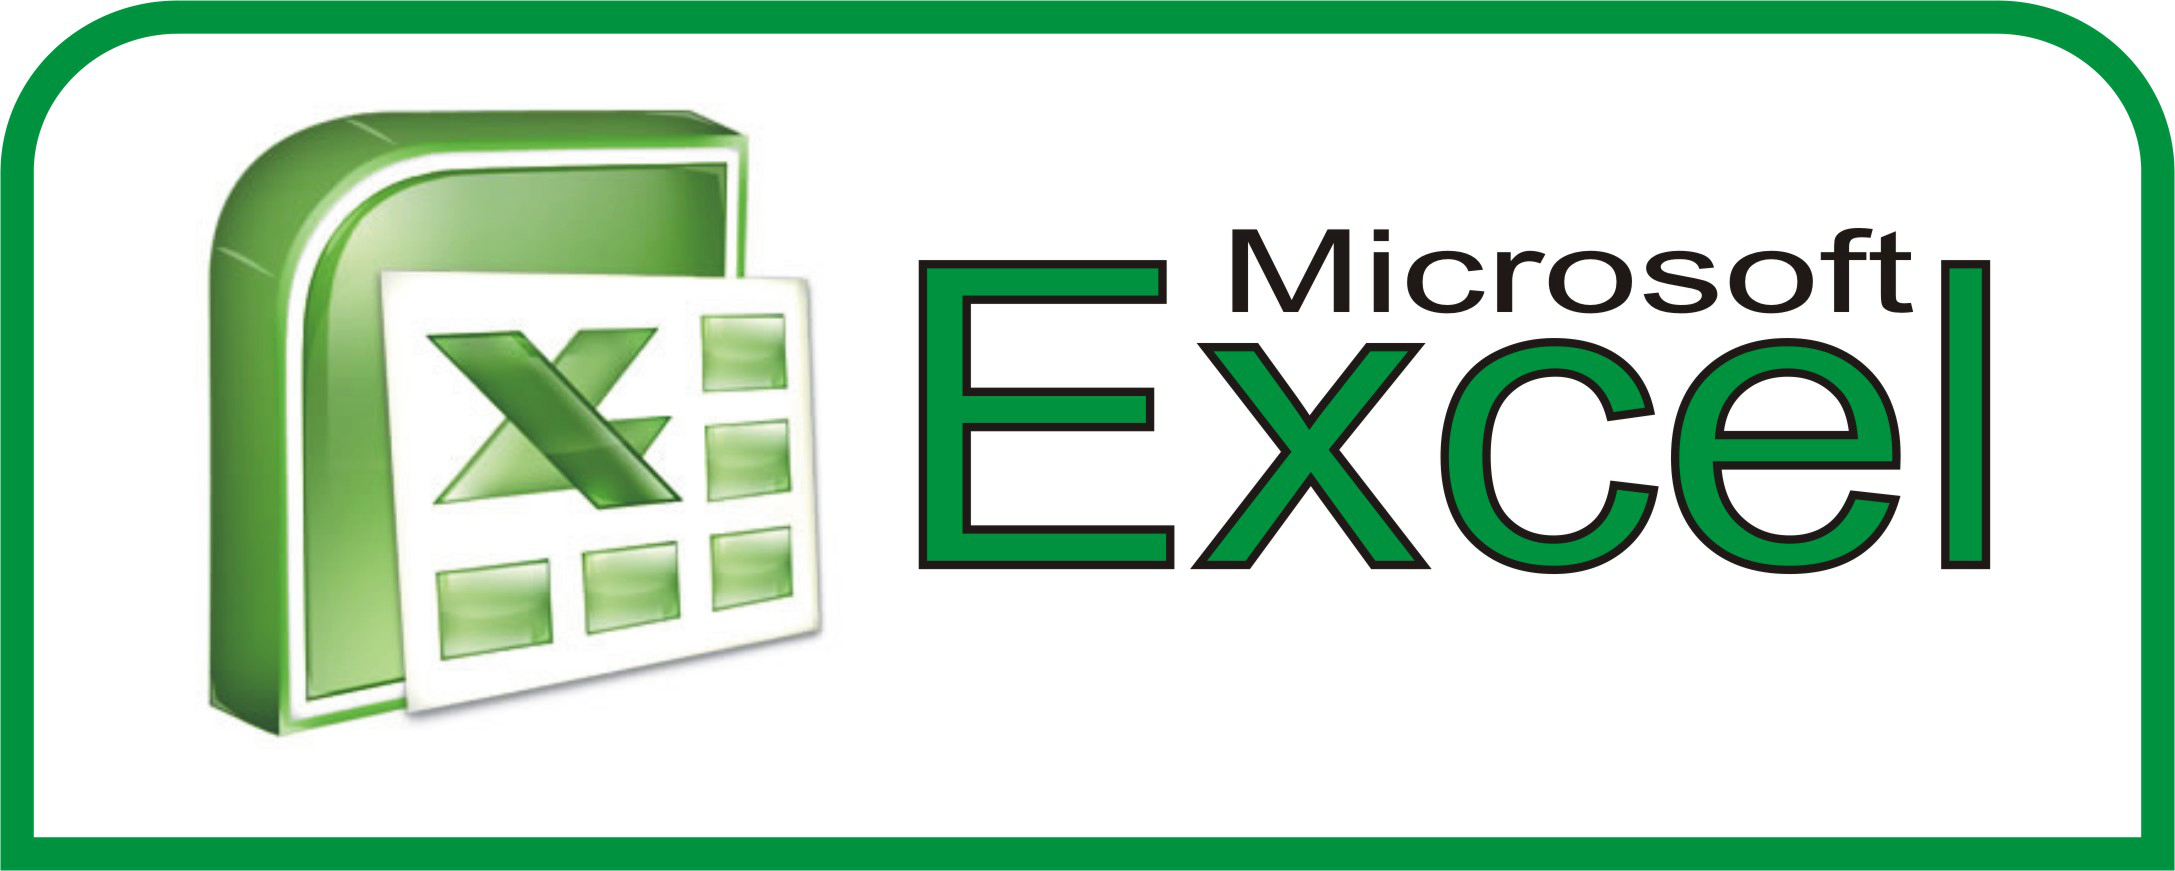 Ediblewildsus  Fascinating  Excel Shortcuts You Probably Didnt Know About  Techdissected With Marvelous Anova In Excel  Besides Microsoft Excel  Furthermore Microsoft Word Excel Powerpoint Free Download With Amusing Rixler Excel Password Recovery Also Sub Formula In Excel In Addition How To Compare Changes In Two Excel Files And My Excel As Well As What Does Round Mean In Excel Additionally Format Function Excel From Techdissectedcom With Ediblewildsus  Marvelous  Excel Shortcuts You Probably Didnt Know About  Techdissected With Amusing Anova In Excel  Besides Microsoft Excel  Furthermore Microsoft Word Excel Powerpoint Free Download And Fascinating Rixler Excel Password Recovery Also Sub Formula In Excel In Addition How To Compare Changes In Two Excel Files From Techdissectedcom